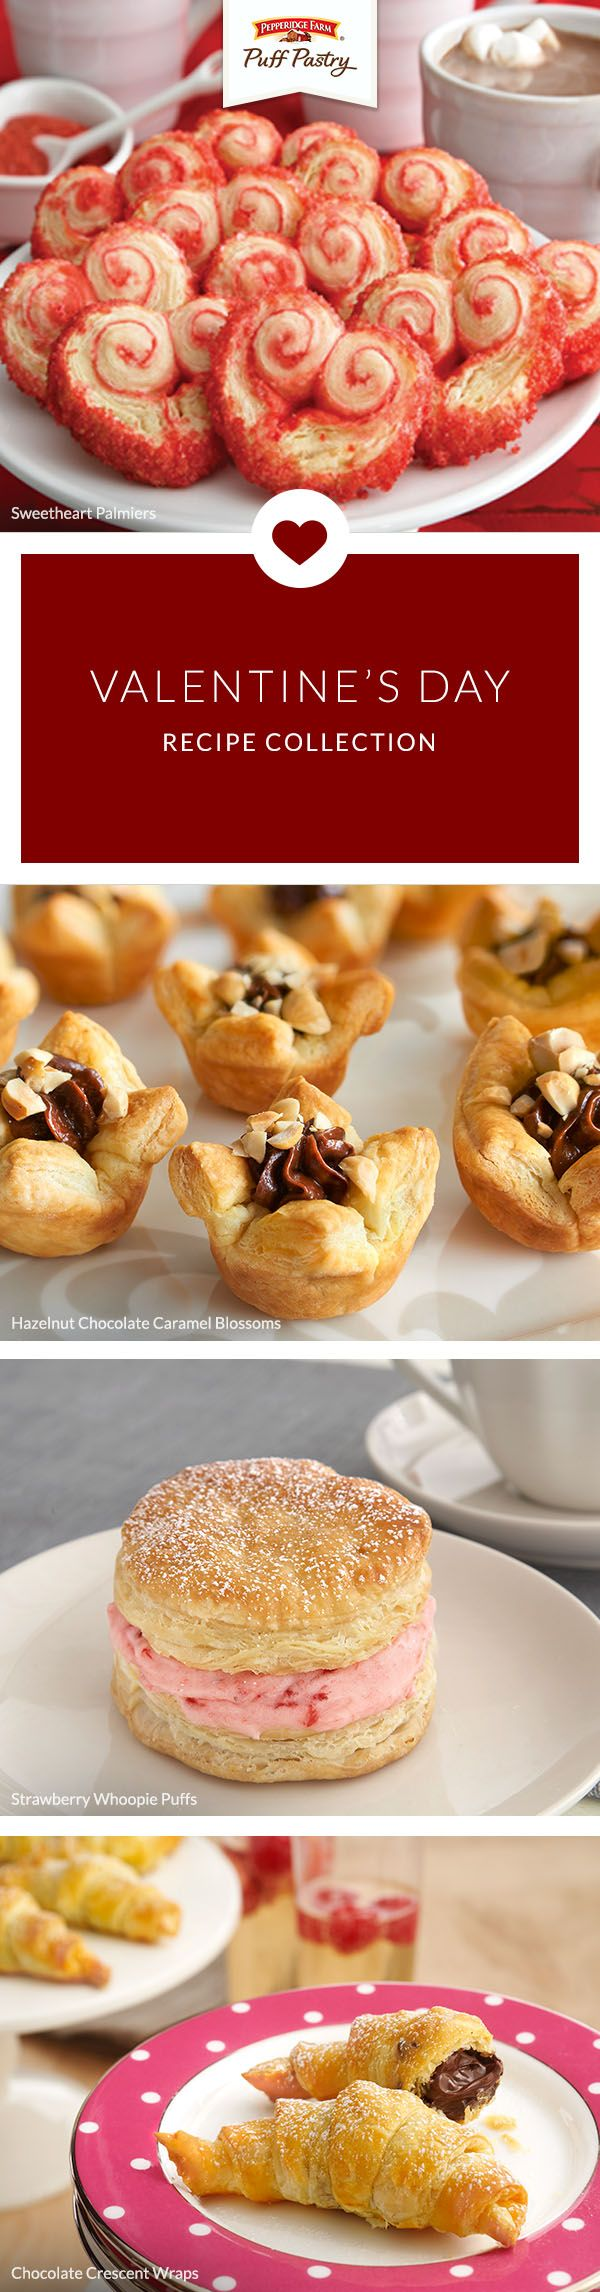 Pepperidge Farm Puff Pastry Valentine's Day Recipe Collection. Set the scene for romance by making your Valentine an impressive Puff Pastry treat. From beautiful Sweetheart Palmiers to irresistible Hazenut Chocolate Caramel Blossoms, show your true love how much you care with these dreamy desserts.